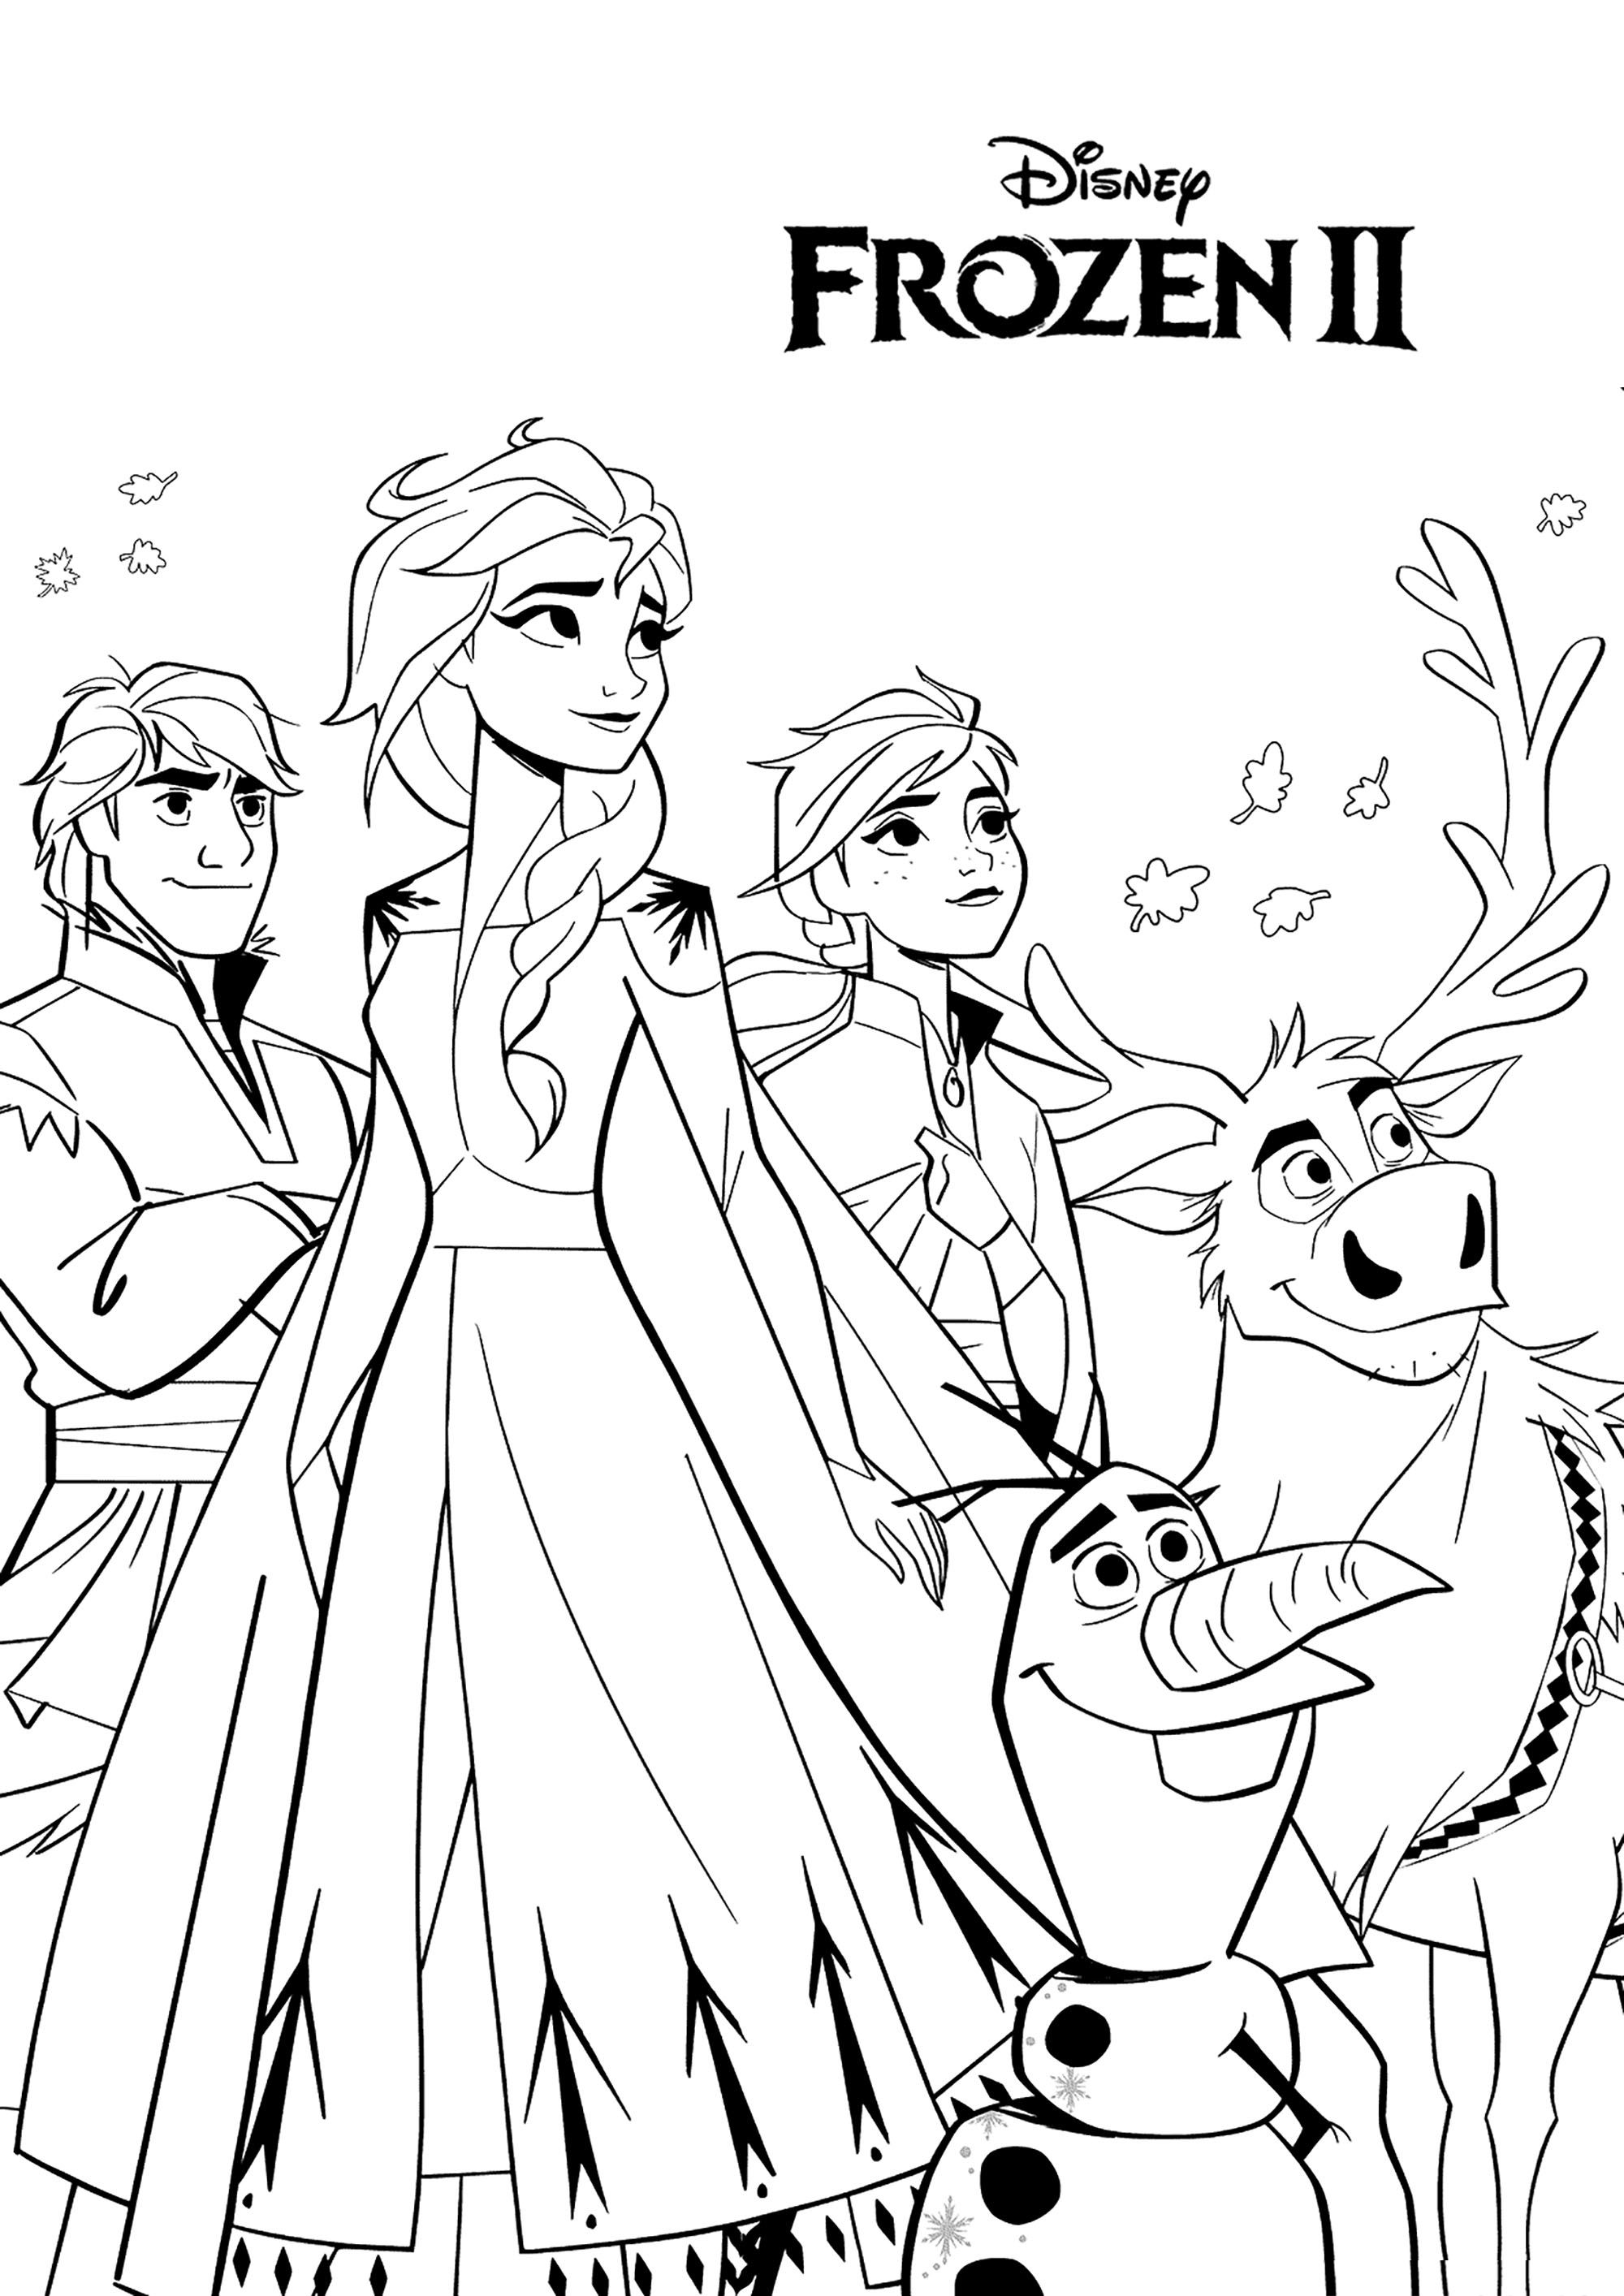 Frozen 2 To Print Incredible Frozen 2 Coloring Page To Print And Color For Free From The Gal In 2020 Elsa Coloring Pages Princess Coloring Pages Free Coloring Pages